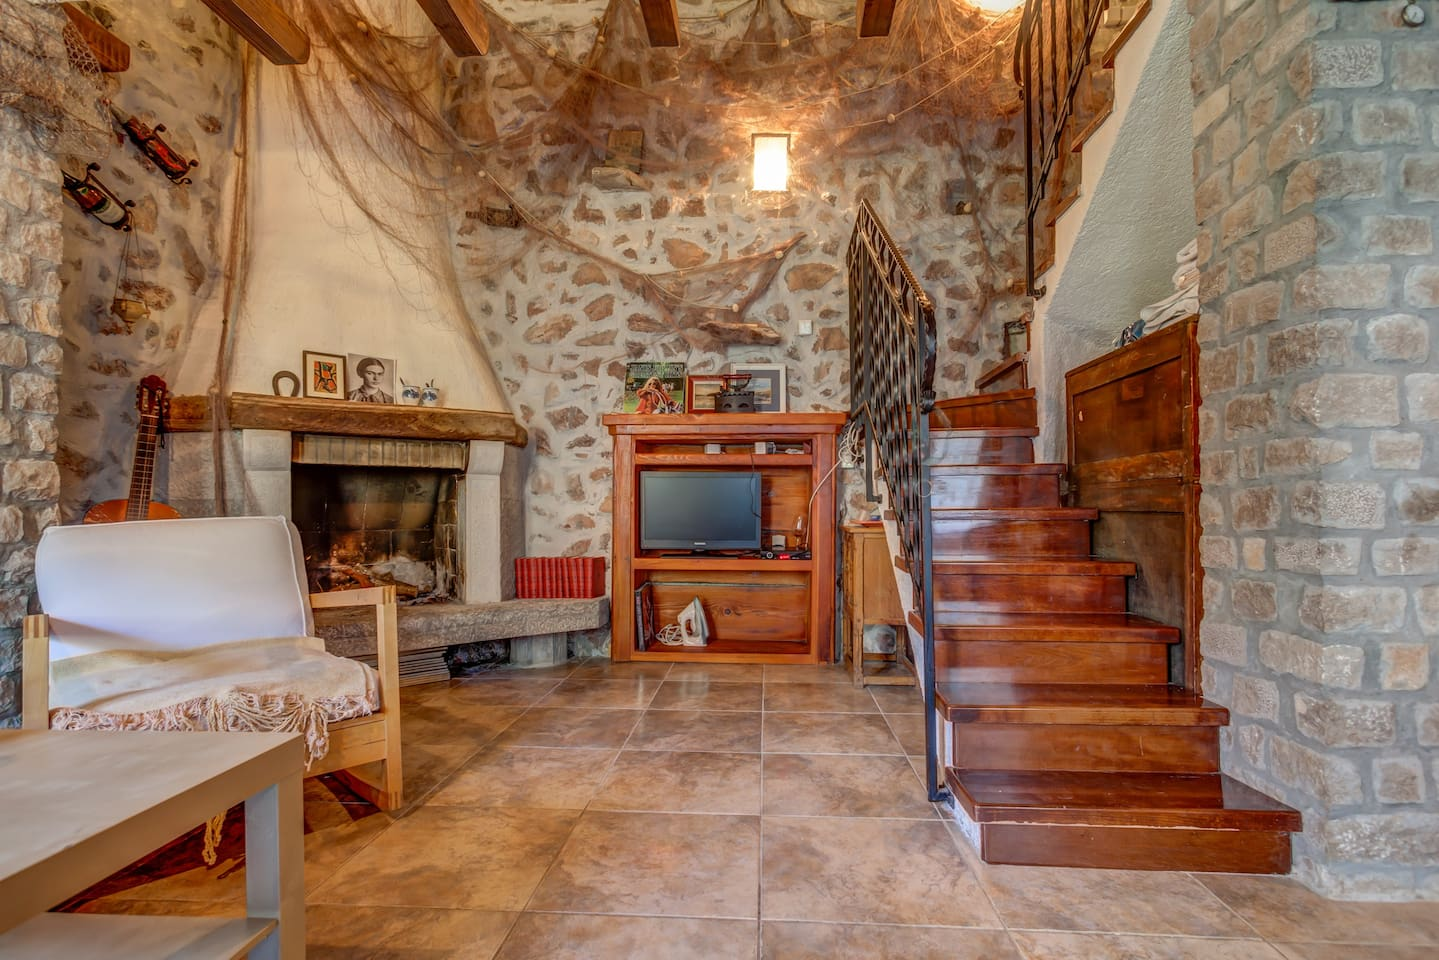 Duplex Studio is built in ambient traditional style, using wood and stone as main building material. Details, such as fireplace and fishermen's net, make you wander into some other time.